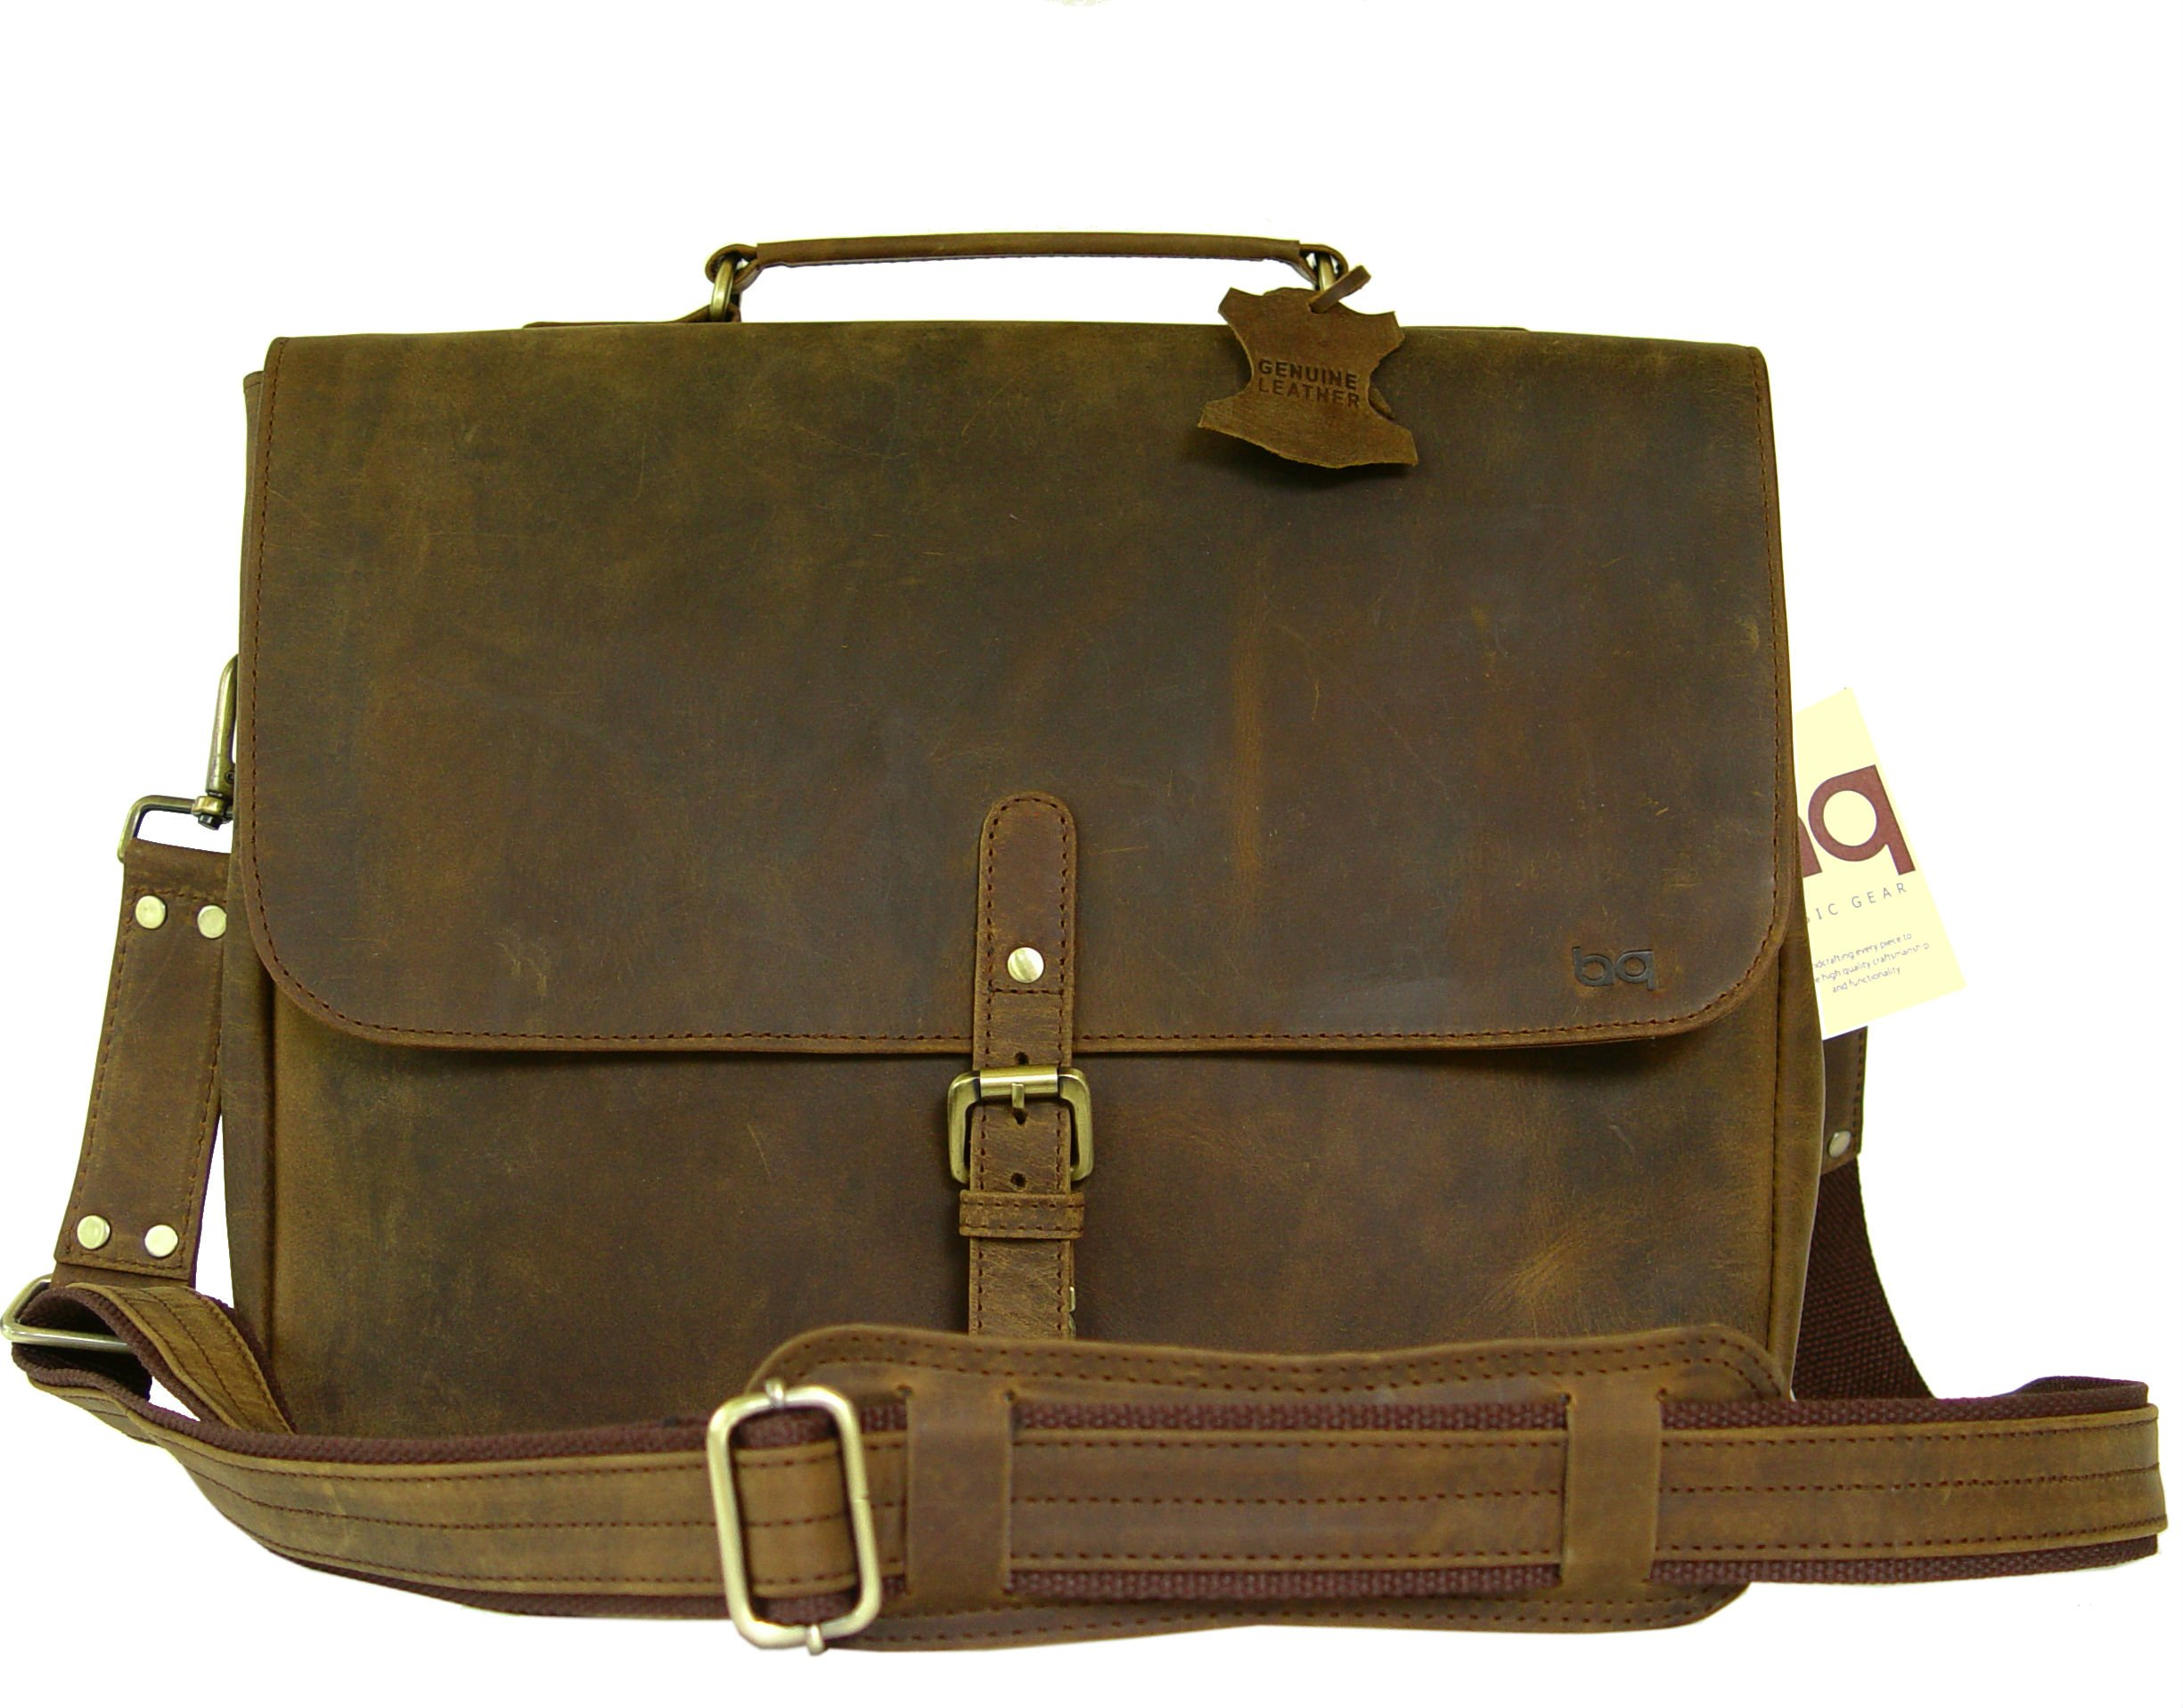 Crazy Horse Leather Postal Messenger Bag With Paded Laptop Compartment in Rustic Vintage Look by BASIC GEAR